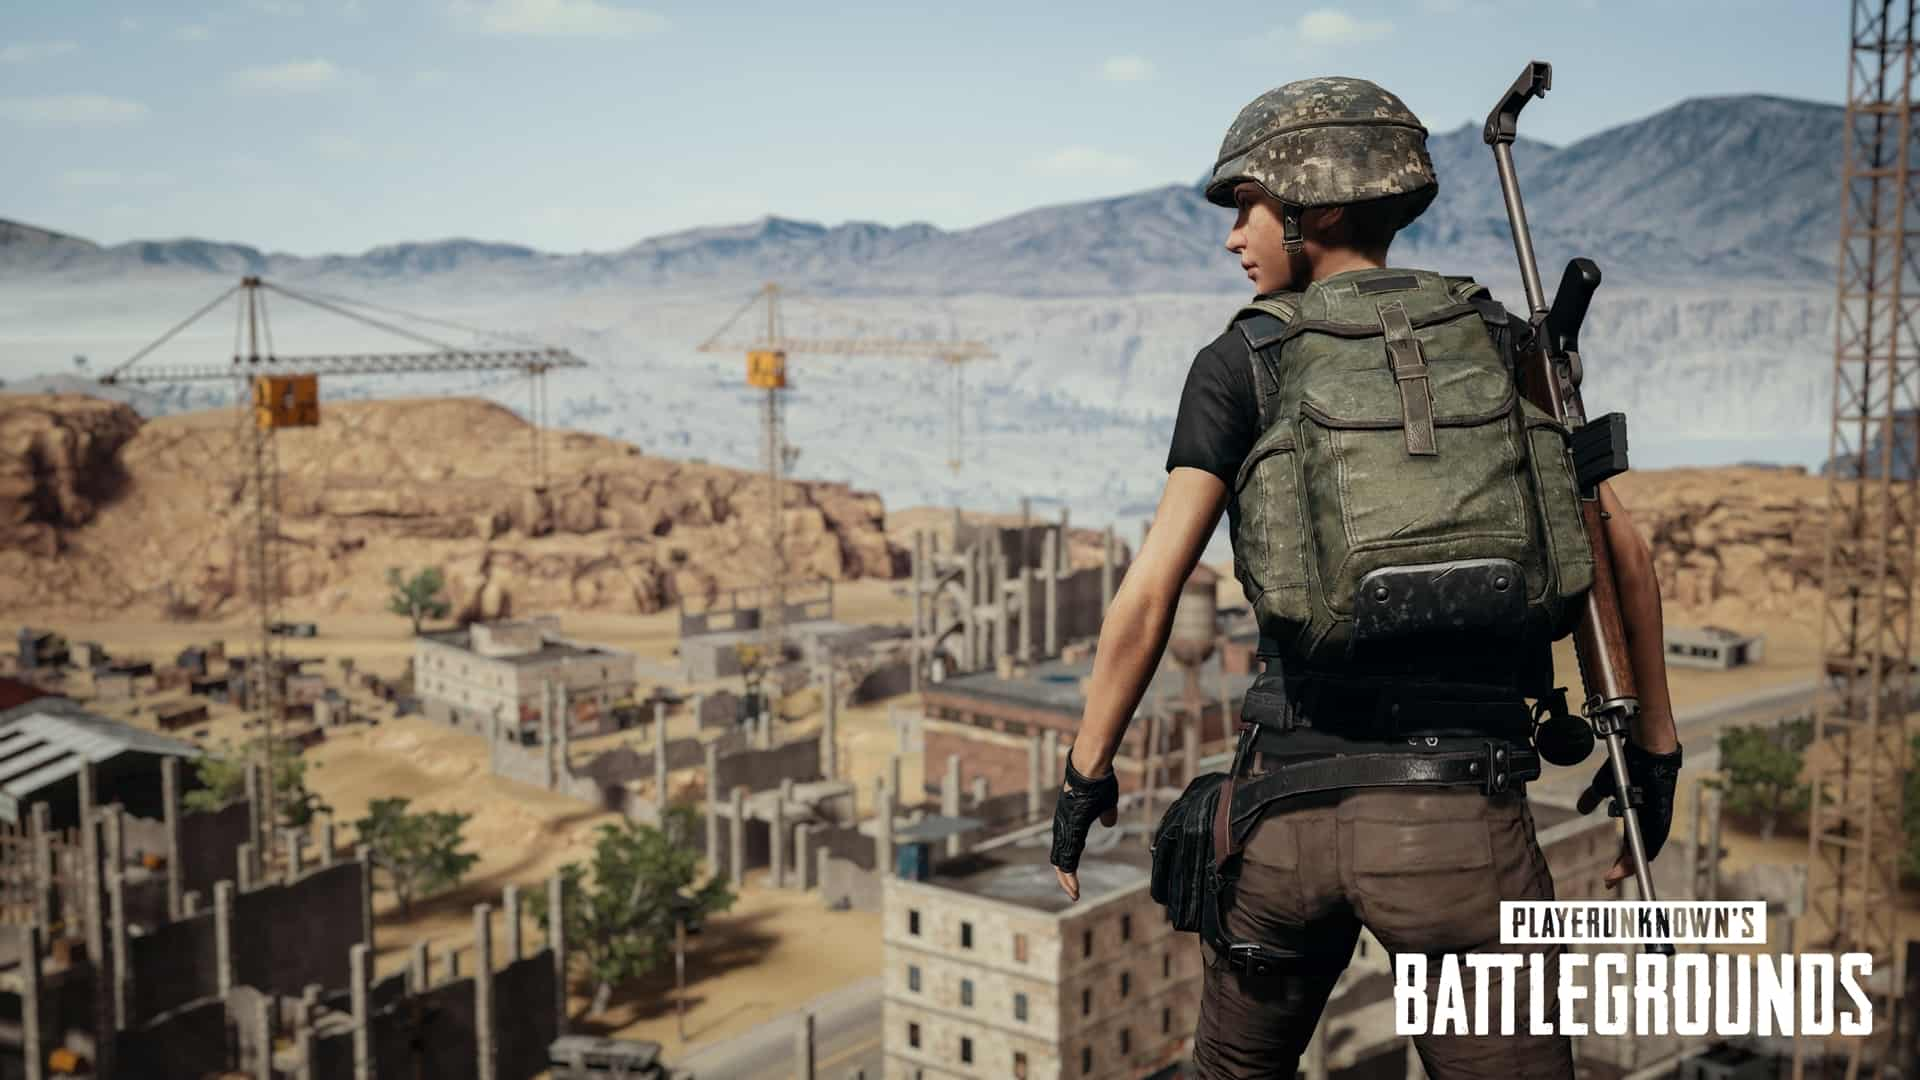 Pubg Sniper Wallpaper Engine: PUBG Mobile Update 0.4.0 Patch Notes Details Huge